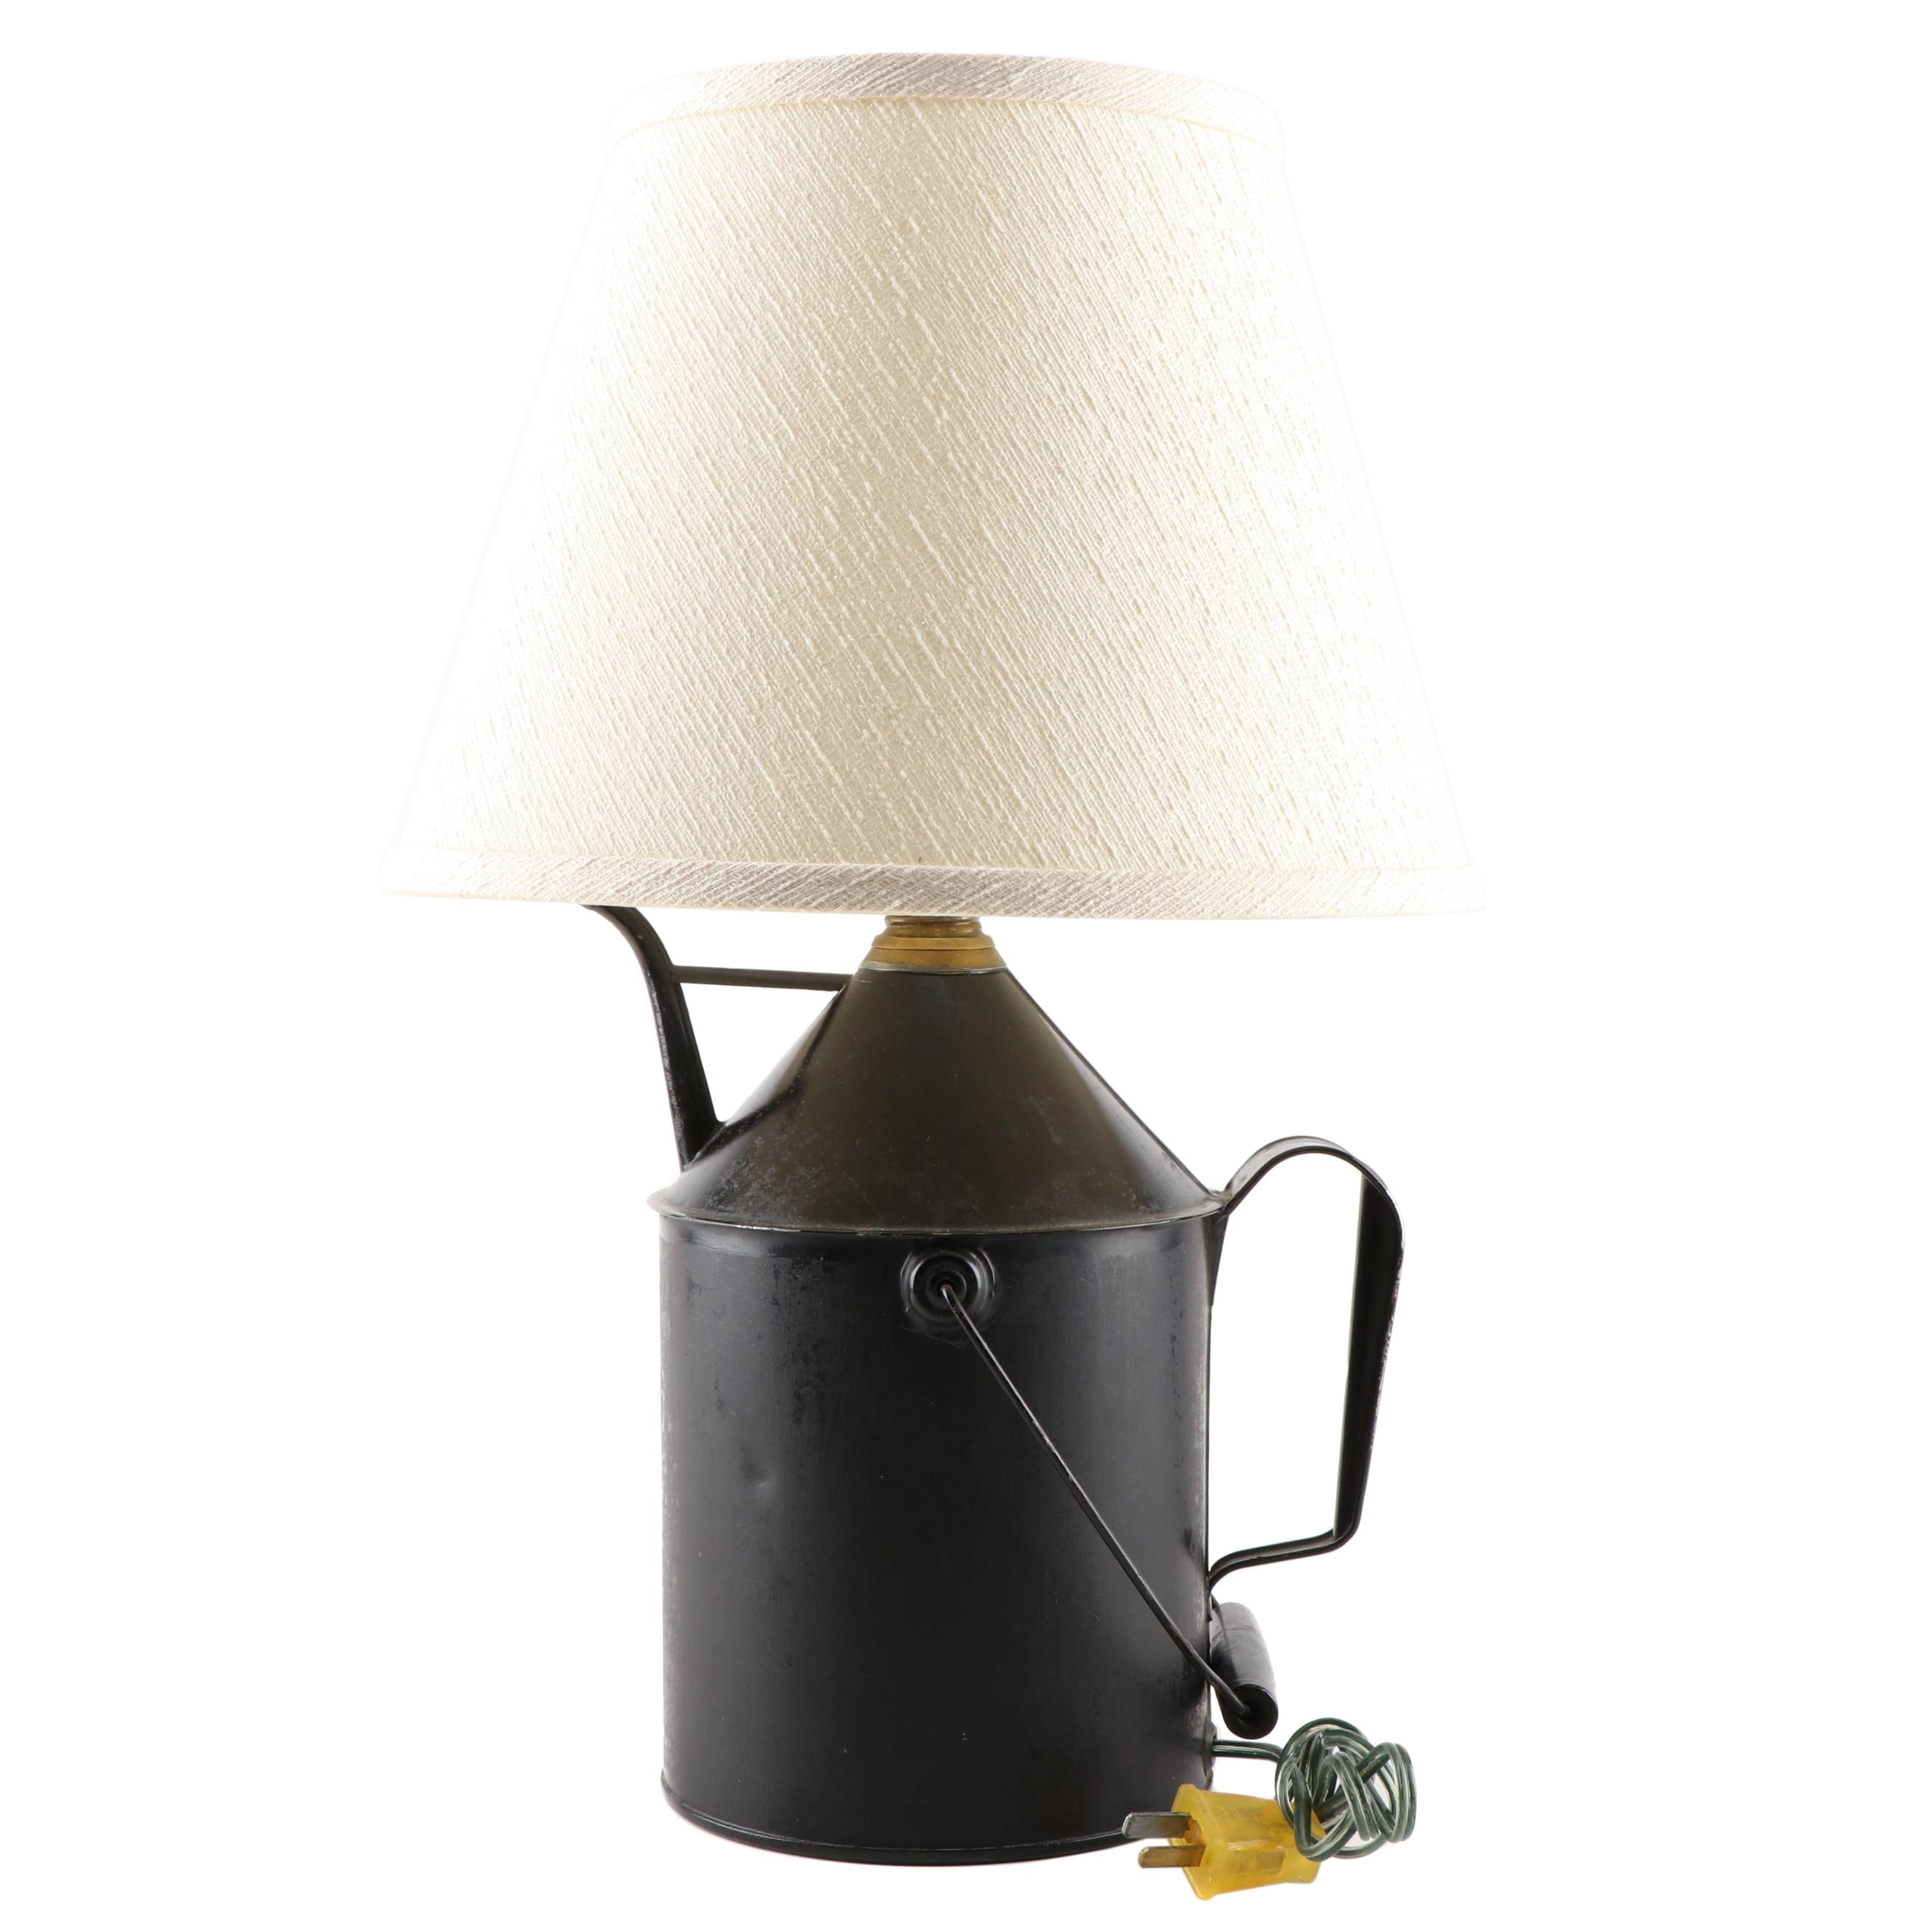 Repurposed Oil Can Table Lamp with Lamp Shade, Early to Mid 20th Century